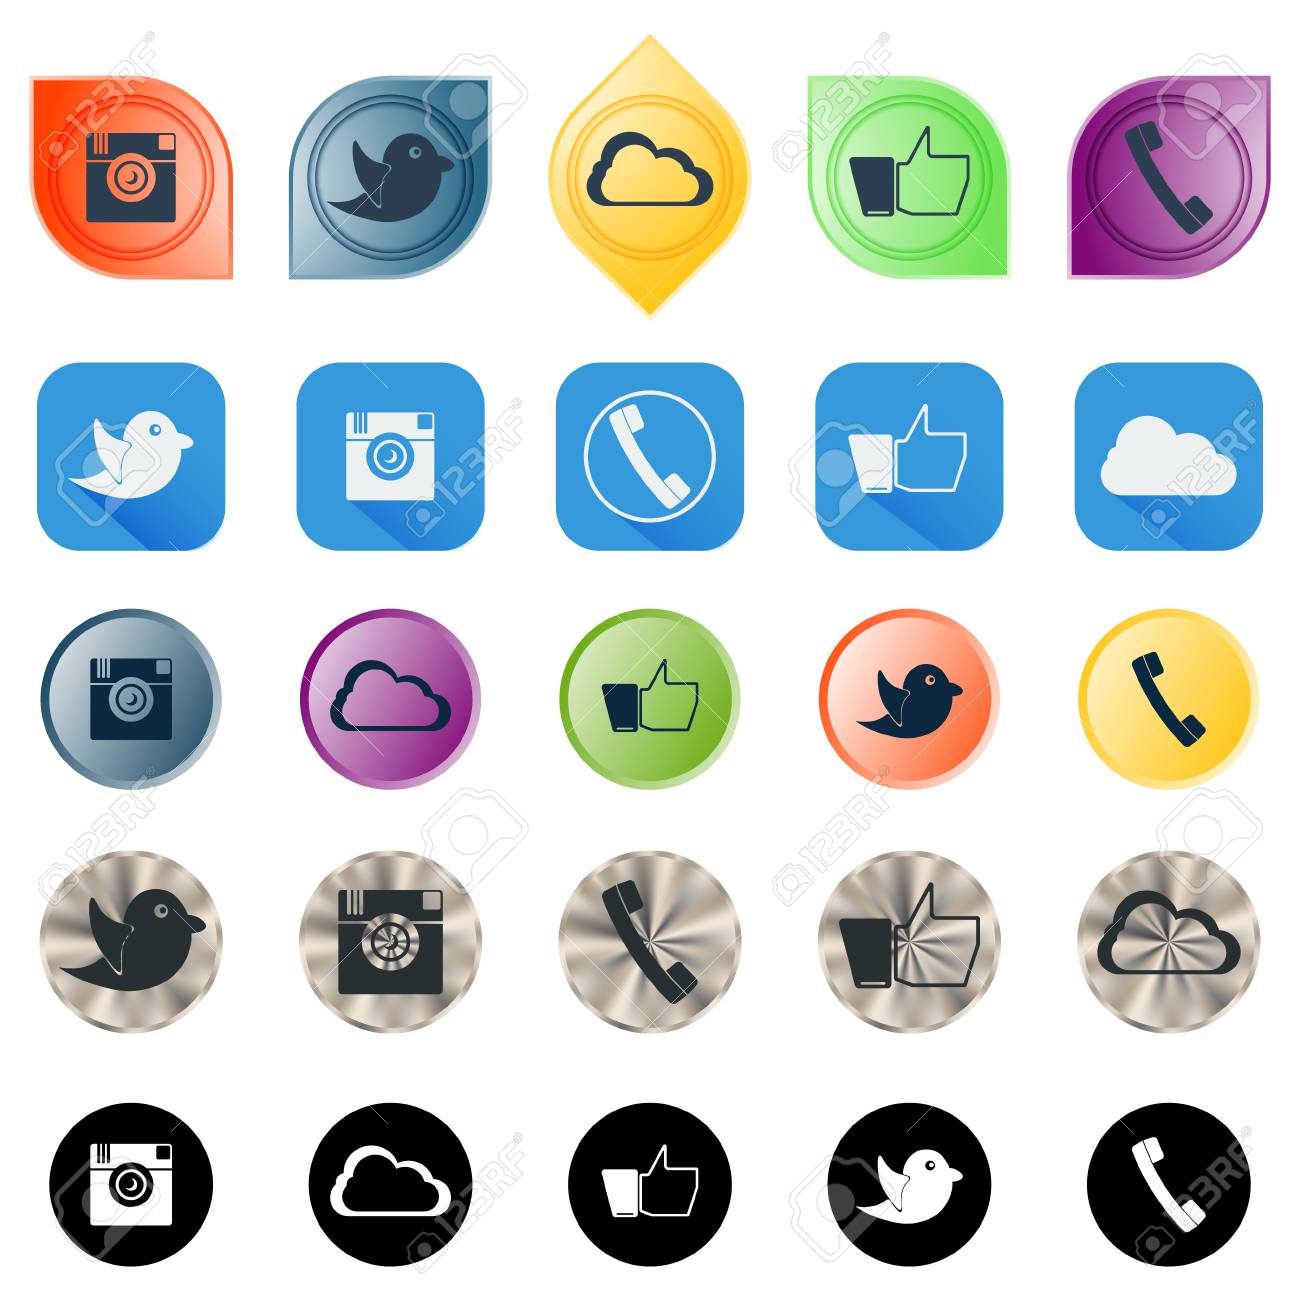 Good Set Of Social Network Icons In Different Styles. Vector Design. Stock  Vector   42021979